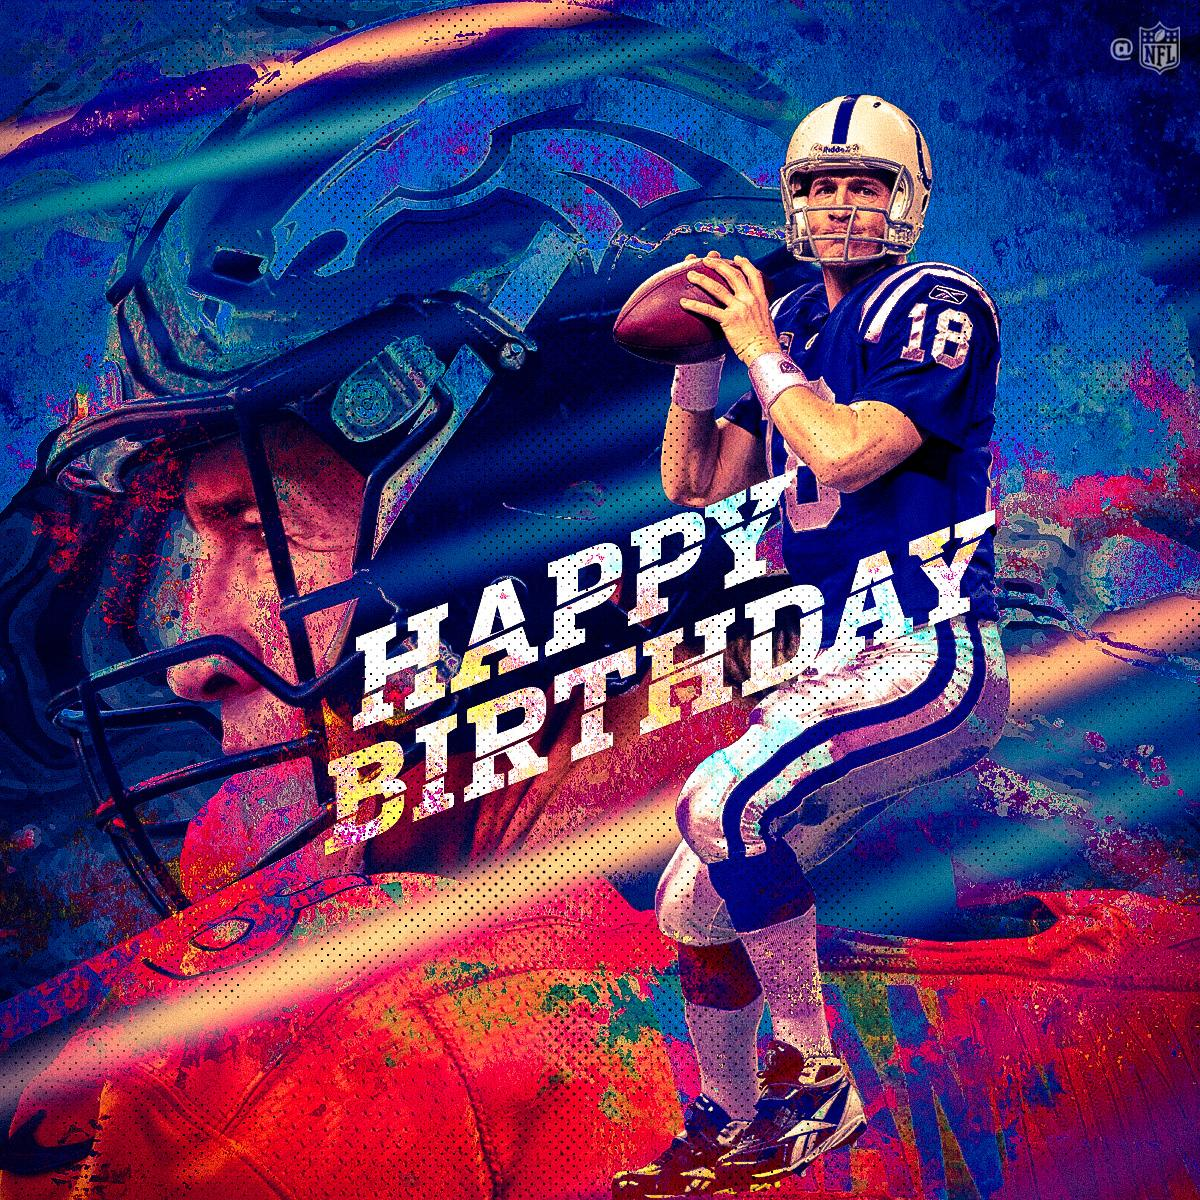 2x Super Bowl champ. 5x MVP. 14x Pro Bowler.  Join us in wishing Peyton Manning a happy birthday!